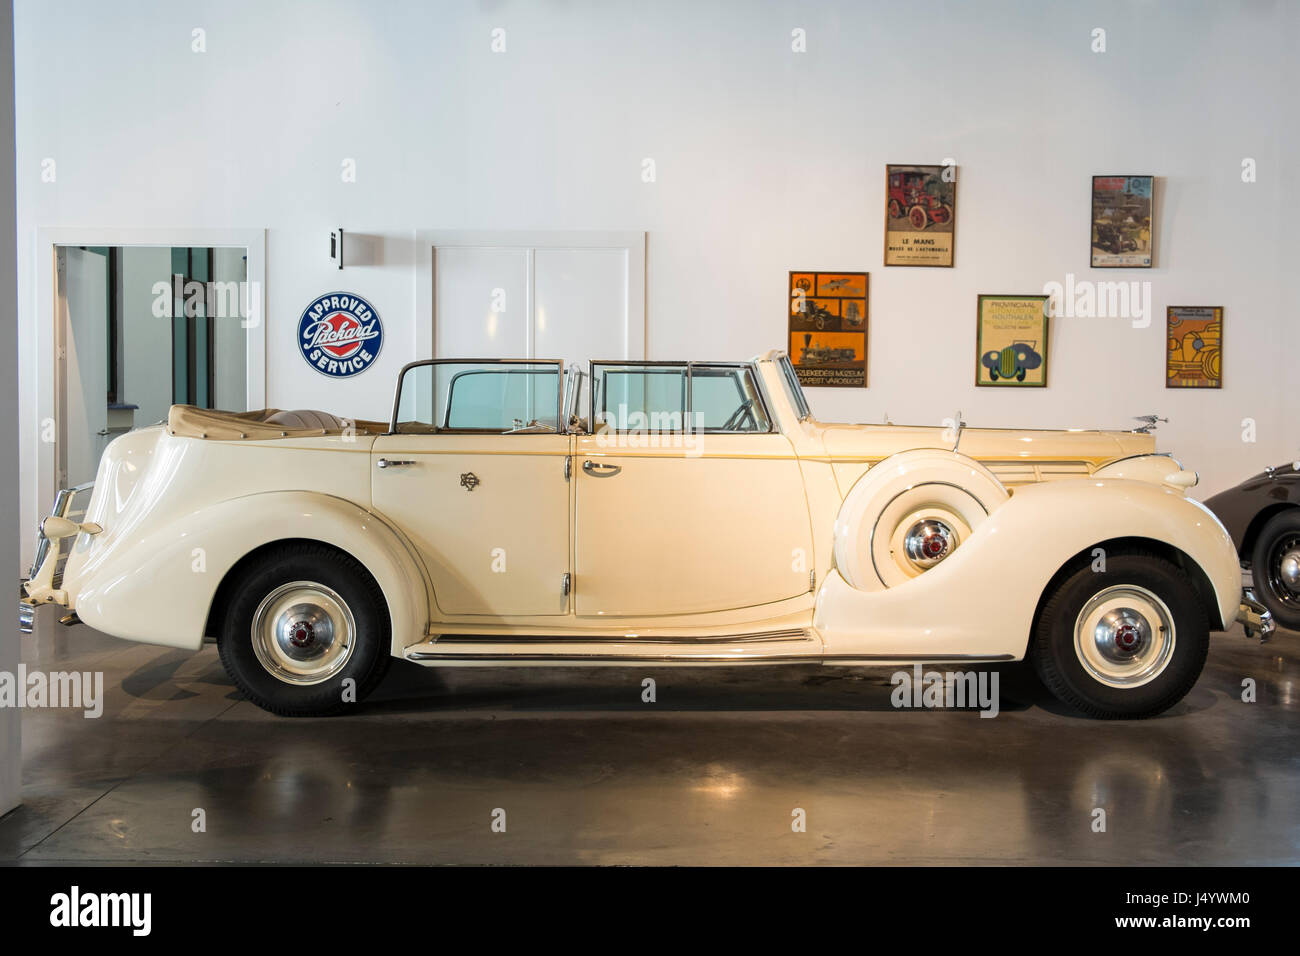 1939 Packard Twelve Armored Convertible Sedan by Dietrich. Automobile museum of Málaga, Andalusia, Spain. - Stock Image